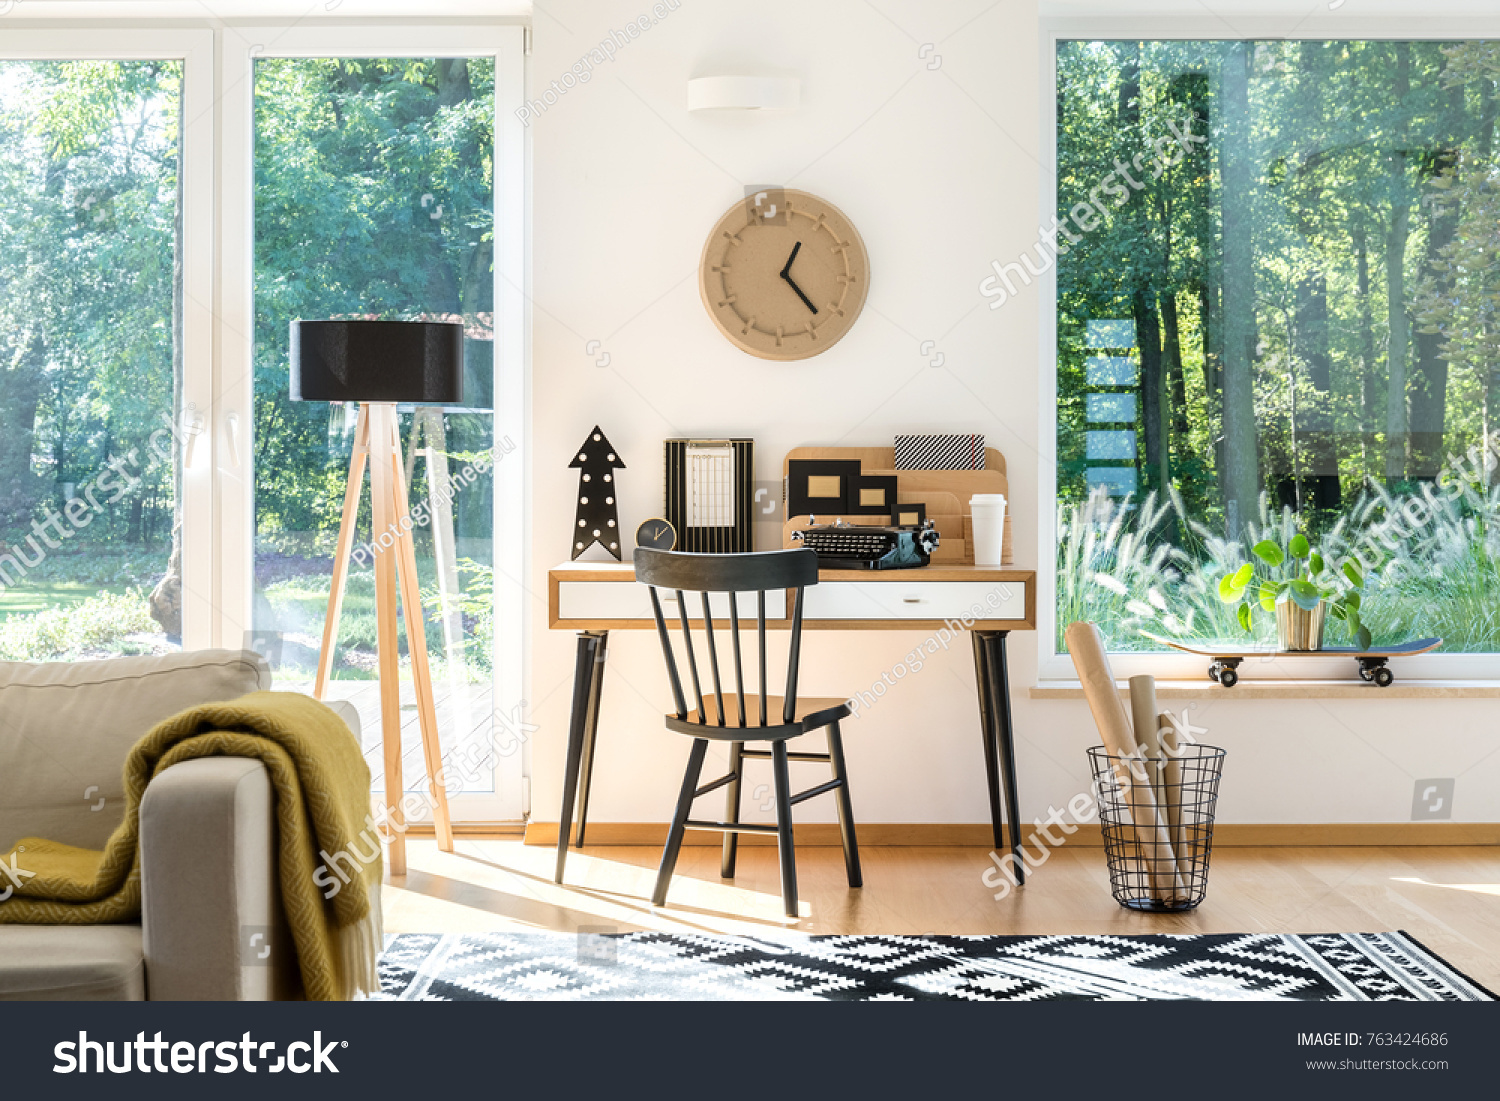 Image of: Wooden Clock Above Black White Desk Stock Photo Edit Now 763424686